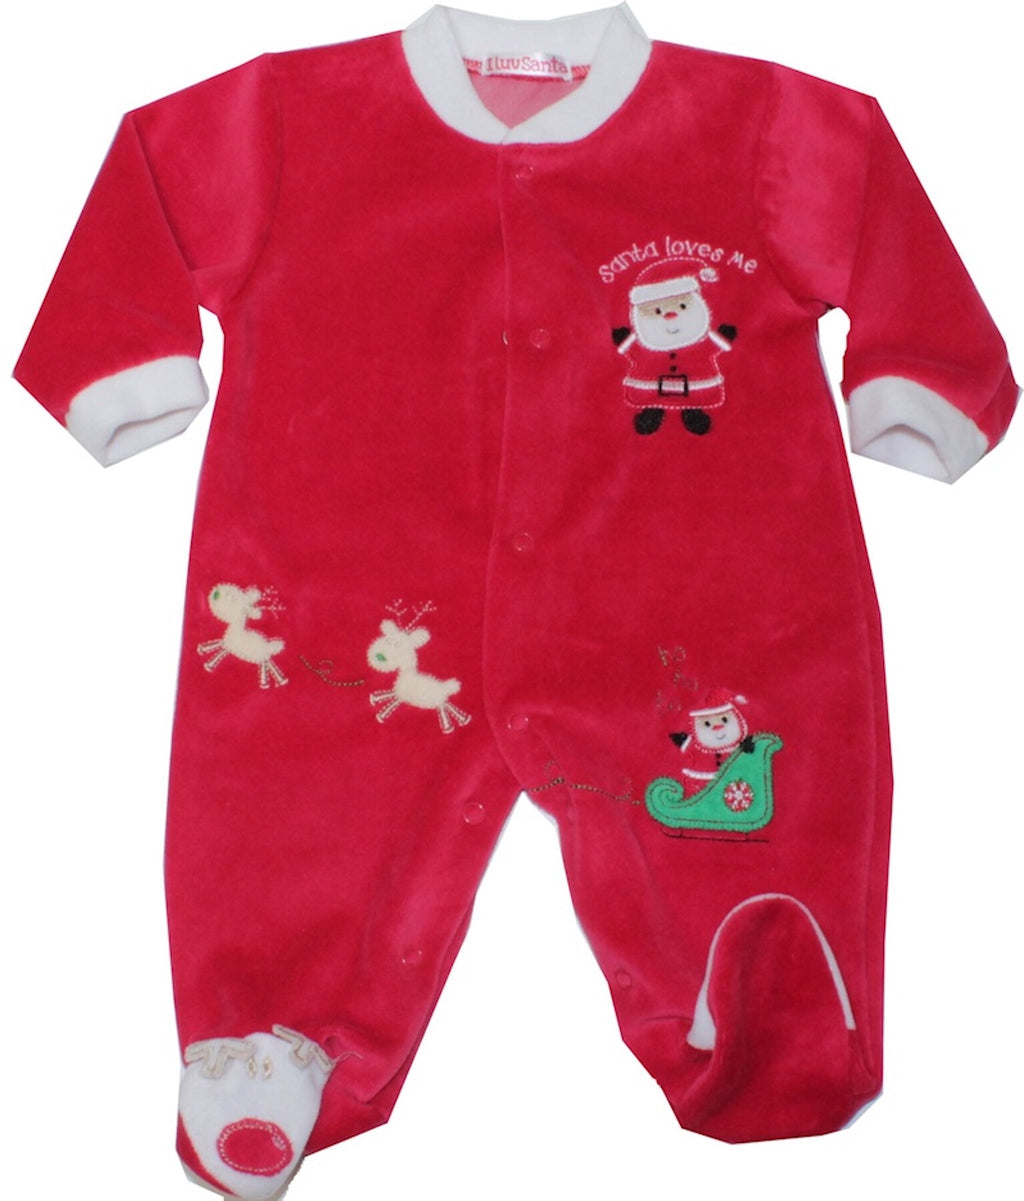 Velour Baby Unisex Sleepsuit |Santa Loves Me | Available in sizes Newborn - 12 months